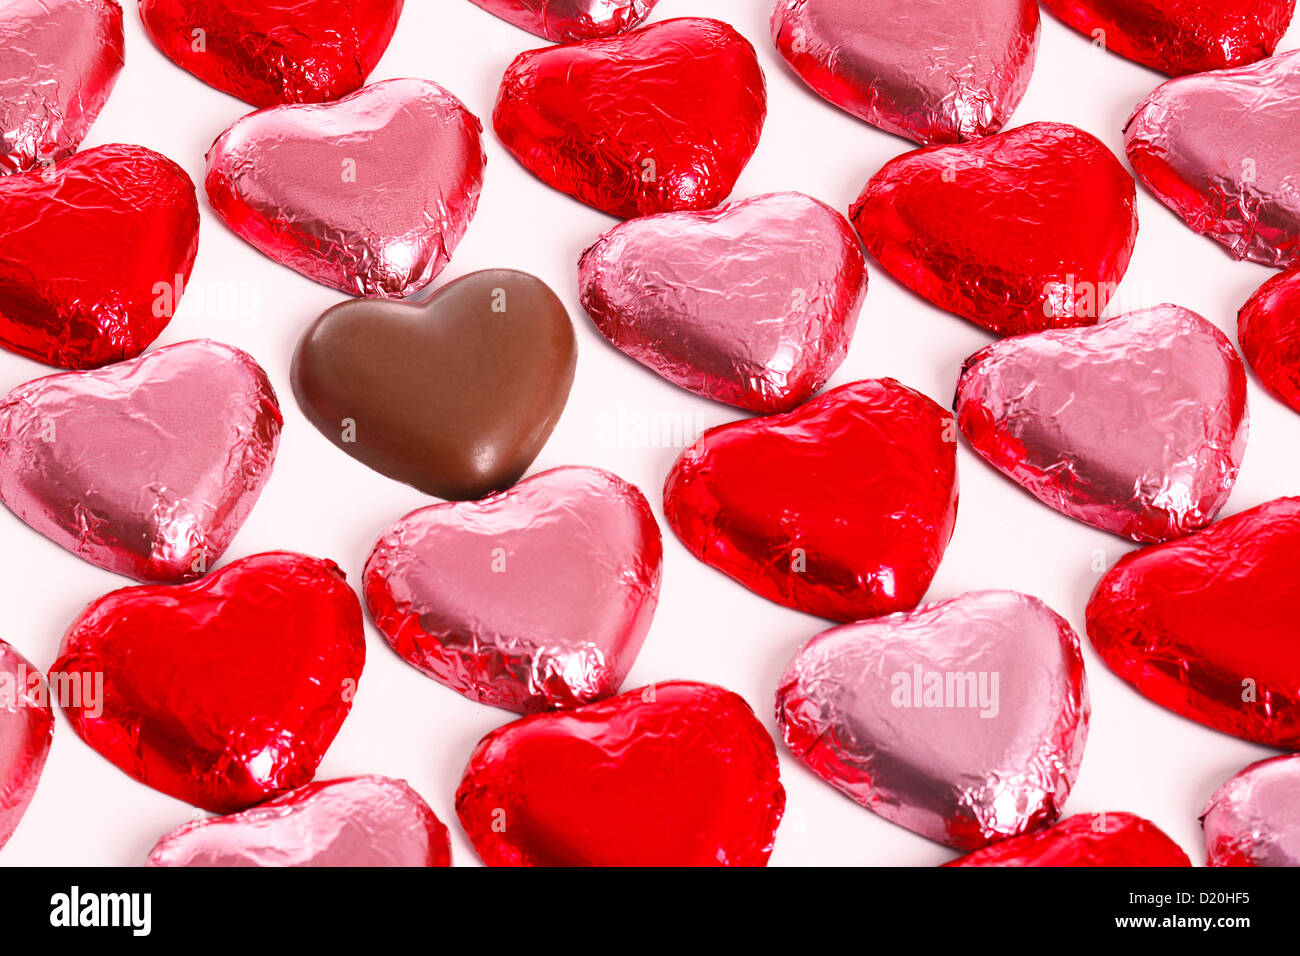 Chocolate hearts in red and pick foil wrappers on a white background, with one unwrapped heart in amongst the group. - Stock Image